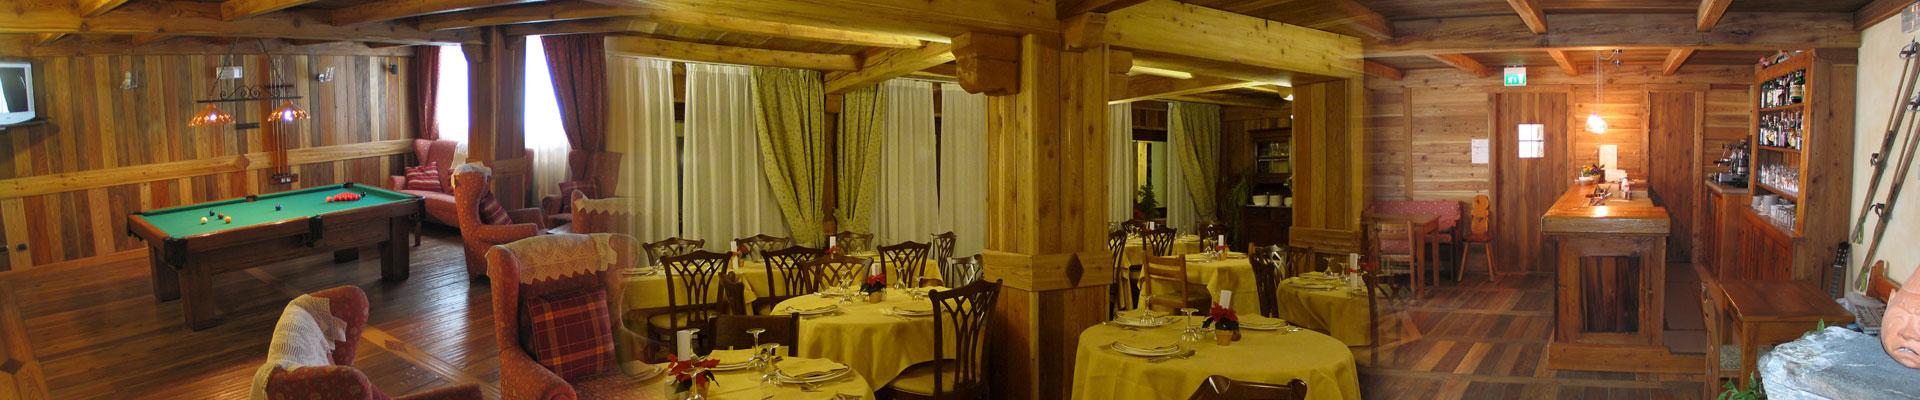 lesrochers therestaurant